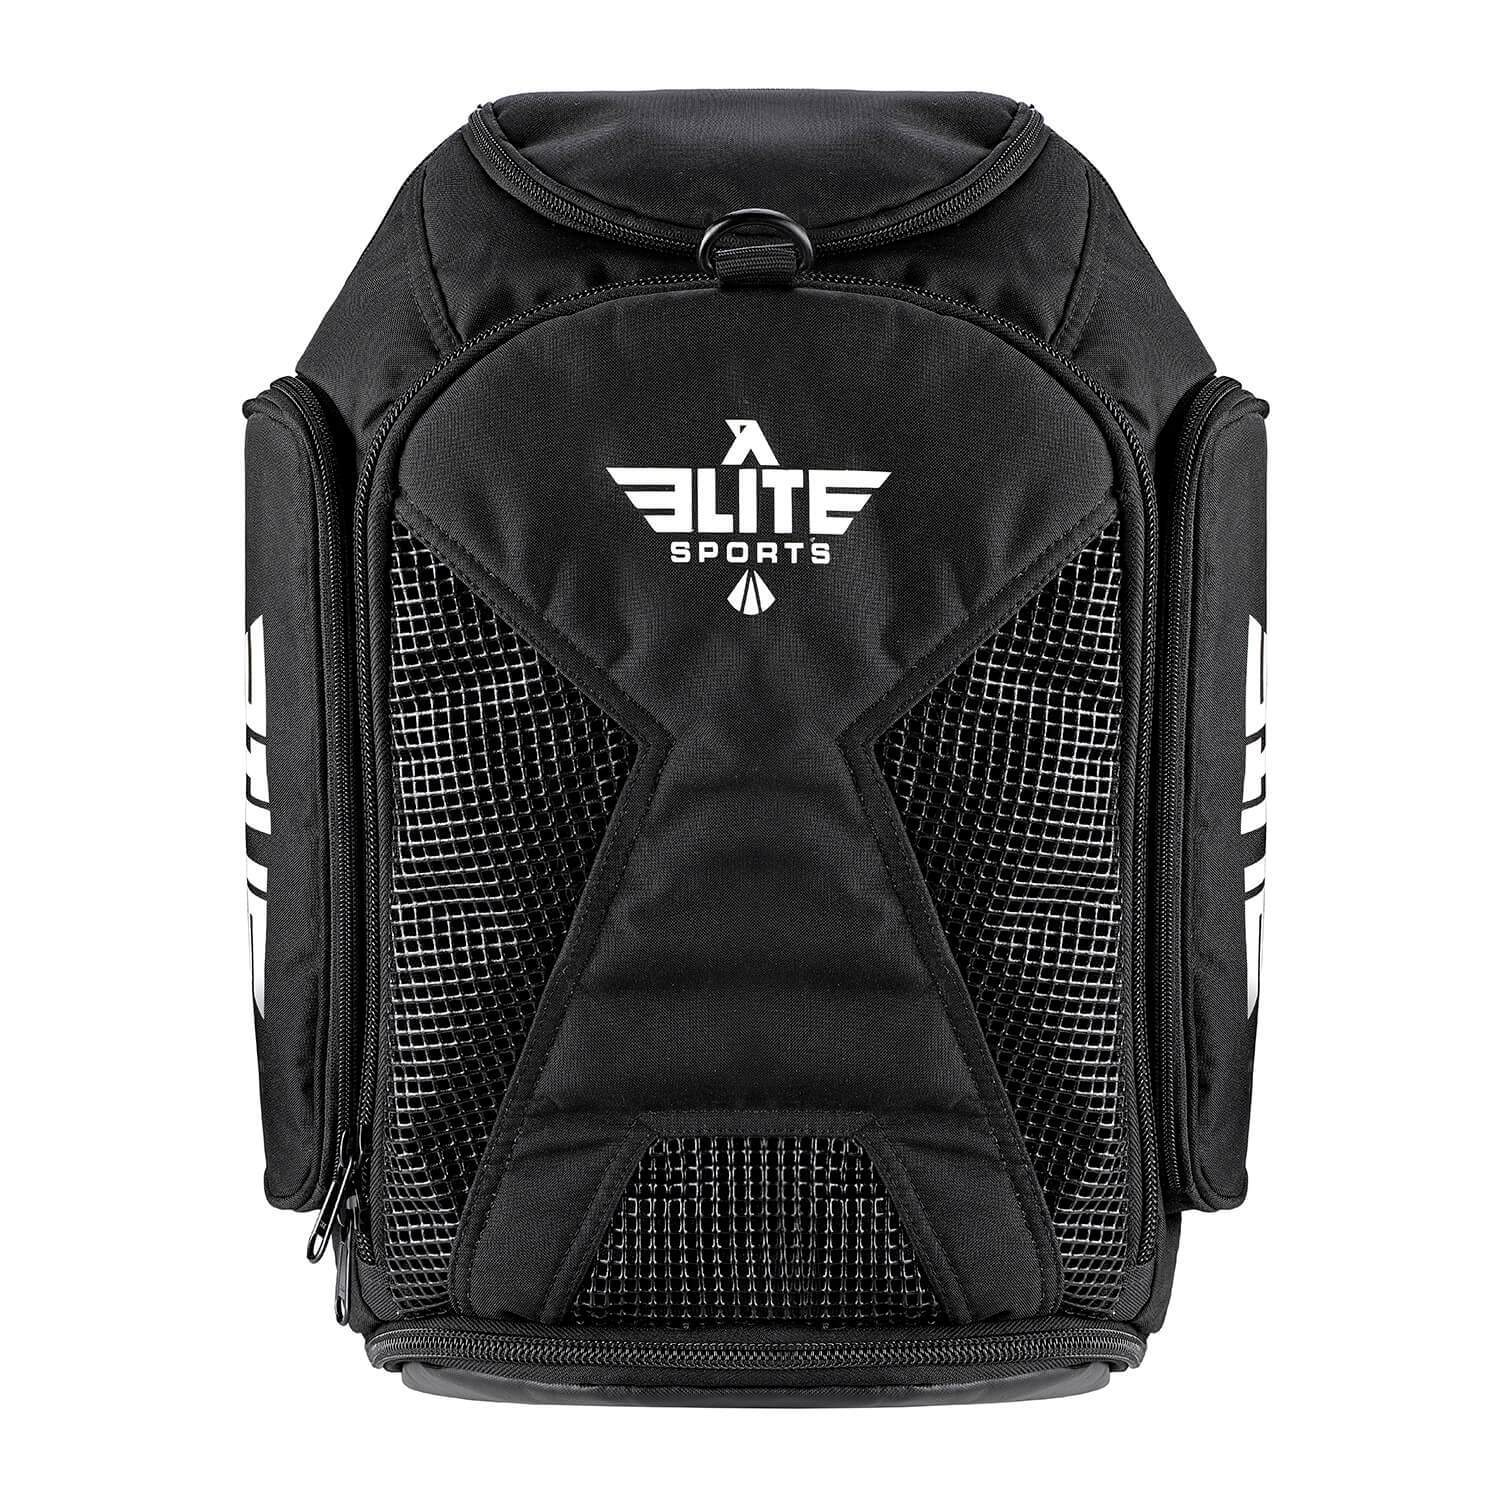 Elite Sports Athletic Convertible Black Karate Gear Gym Bag & Backpack